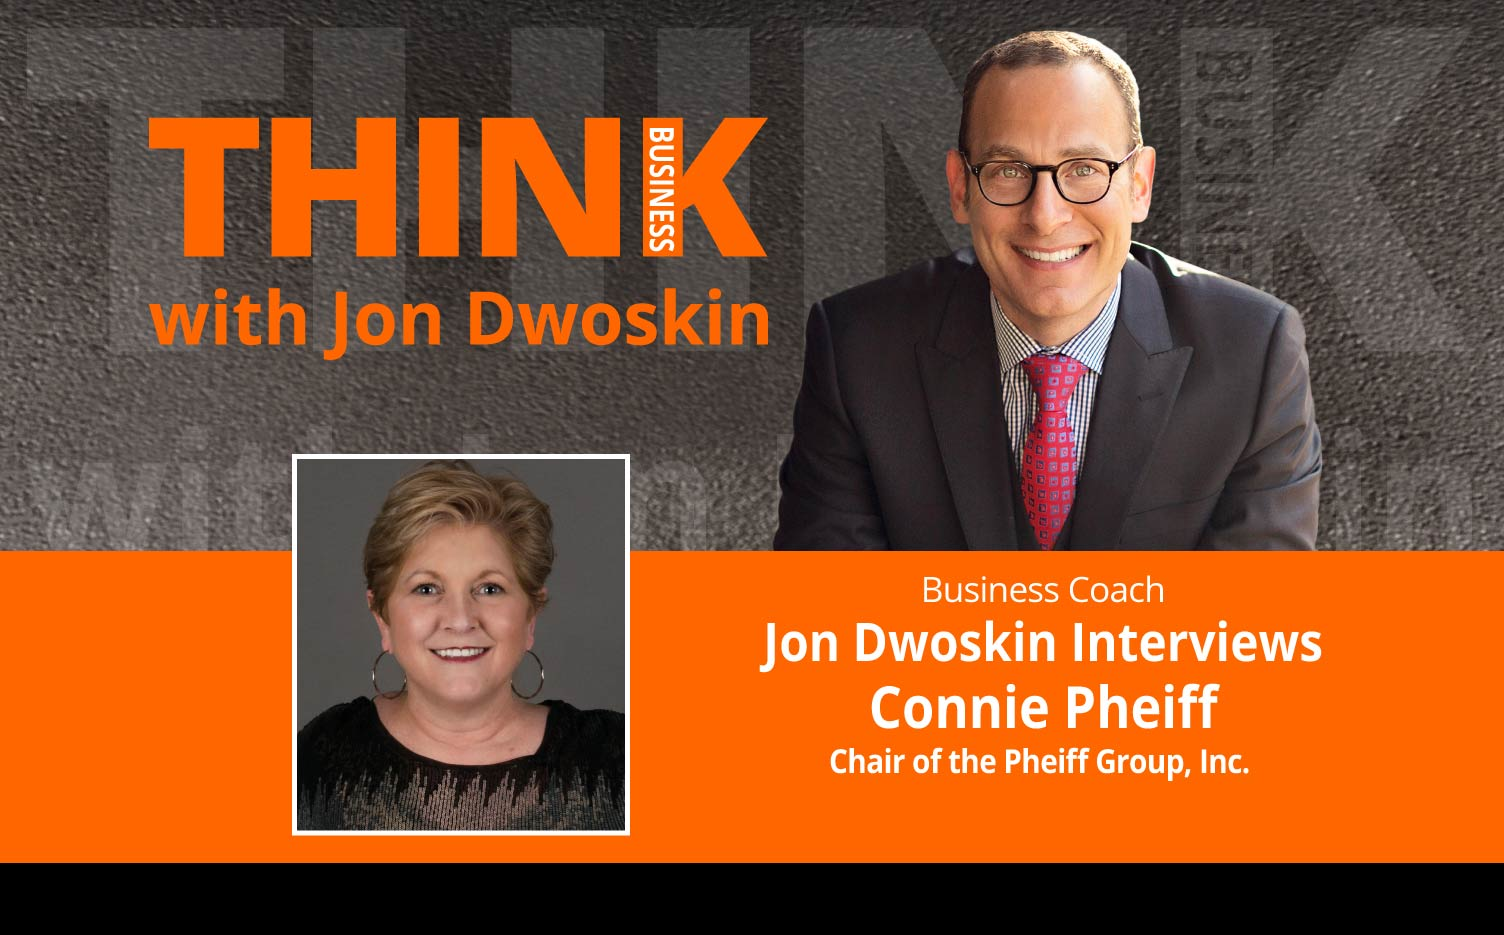 THINK Business Podcast:  Jon Dwoskin Interviews Connie Pheiff, Chair of Pheiff Group, Inc.